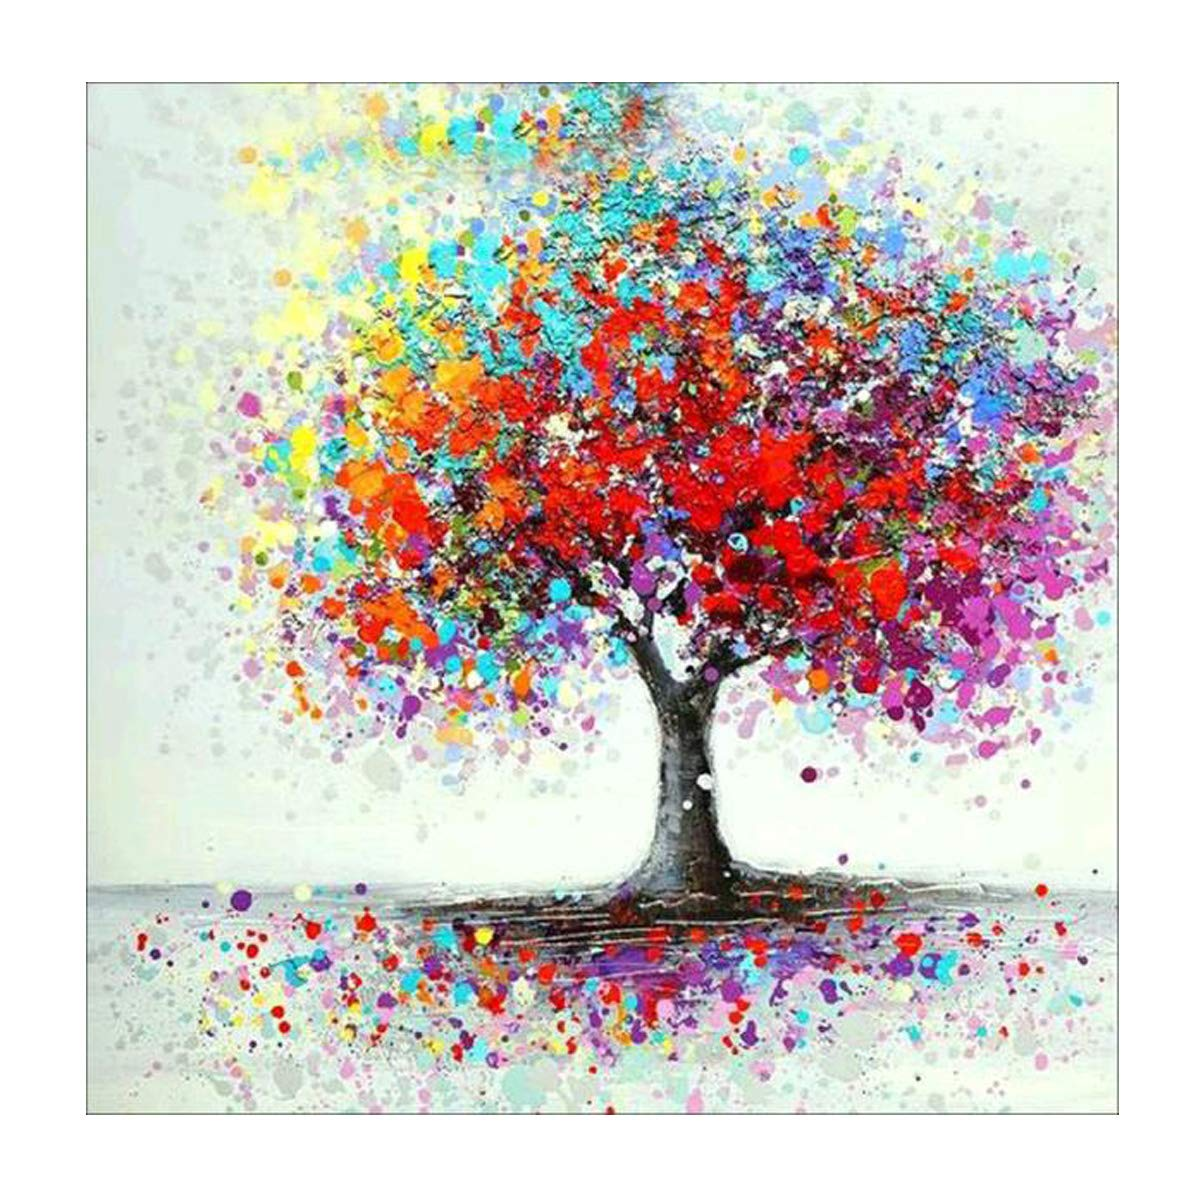 Mxjsua 5d Diamond Painting Full Round Drill Kits For Adults Pasted Arts Craft For Home Wall Decor Colorful Tree 12x12in Amazon Co Uk Kitchen Home